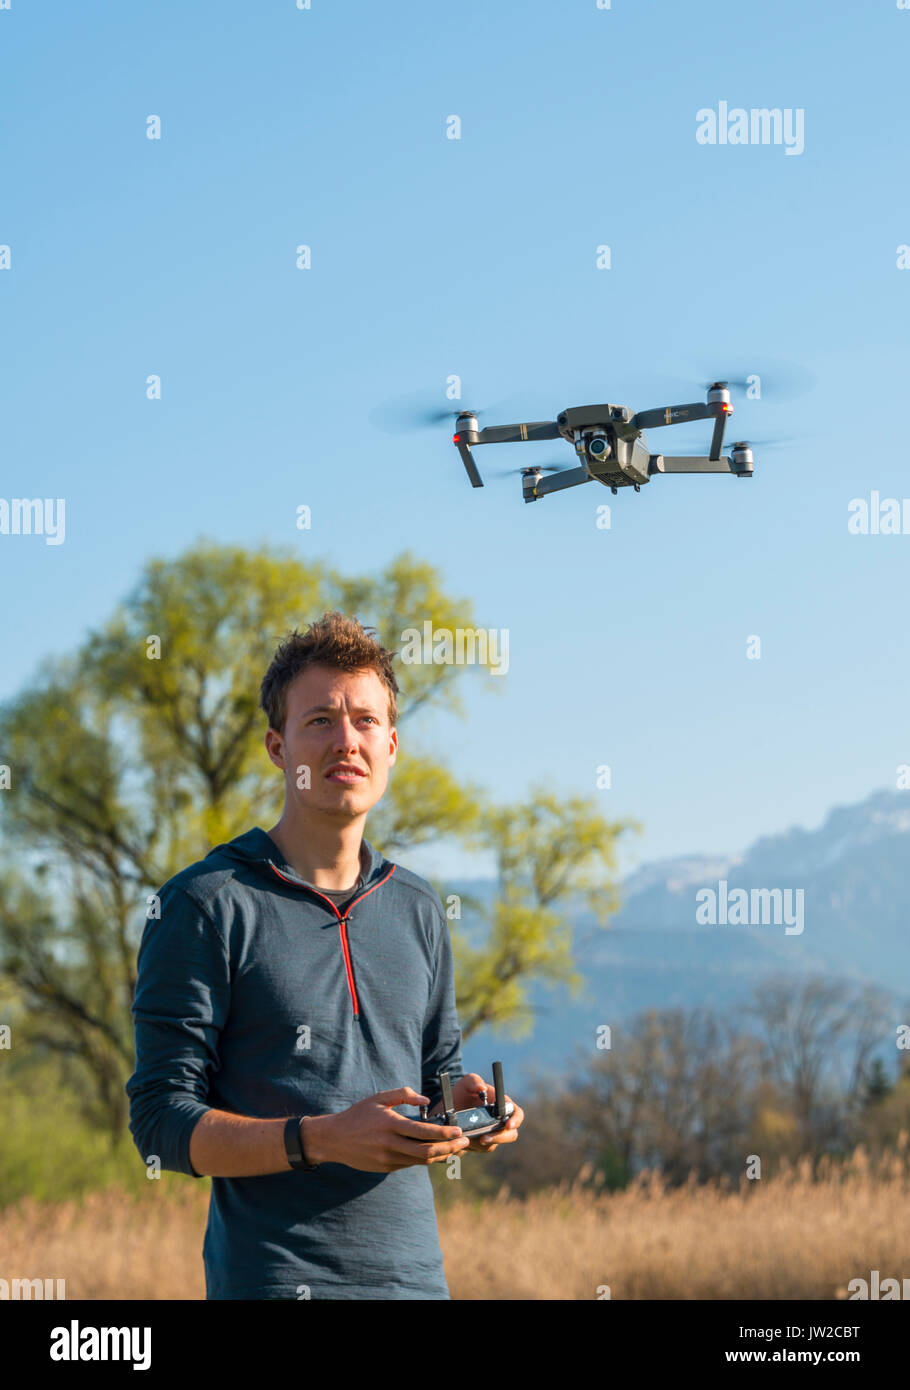 Young man controlling flying quadrocopter, remote controlled drone with camera, DJI Mavic - Stock Image